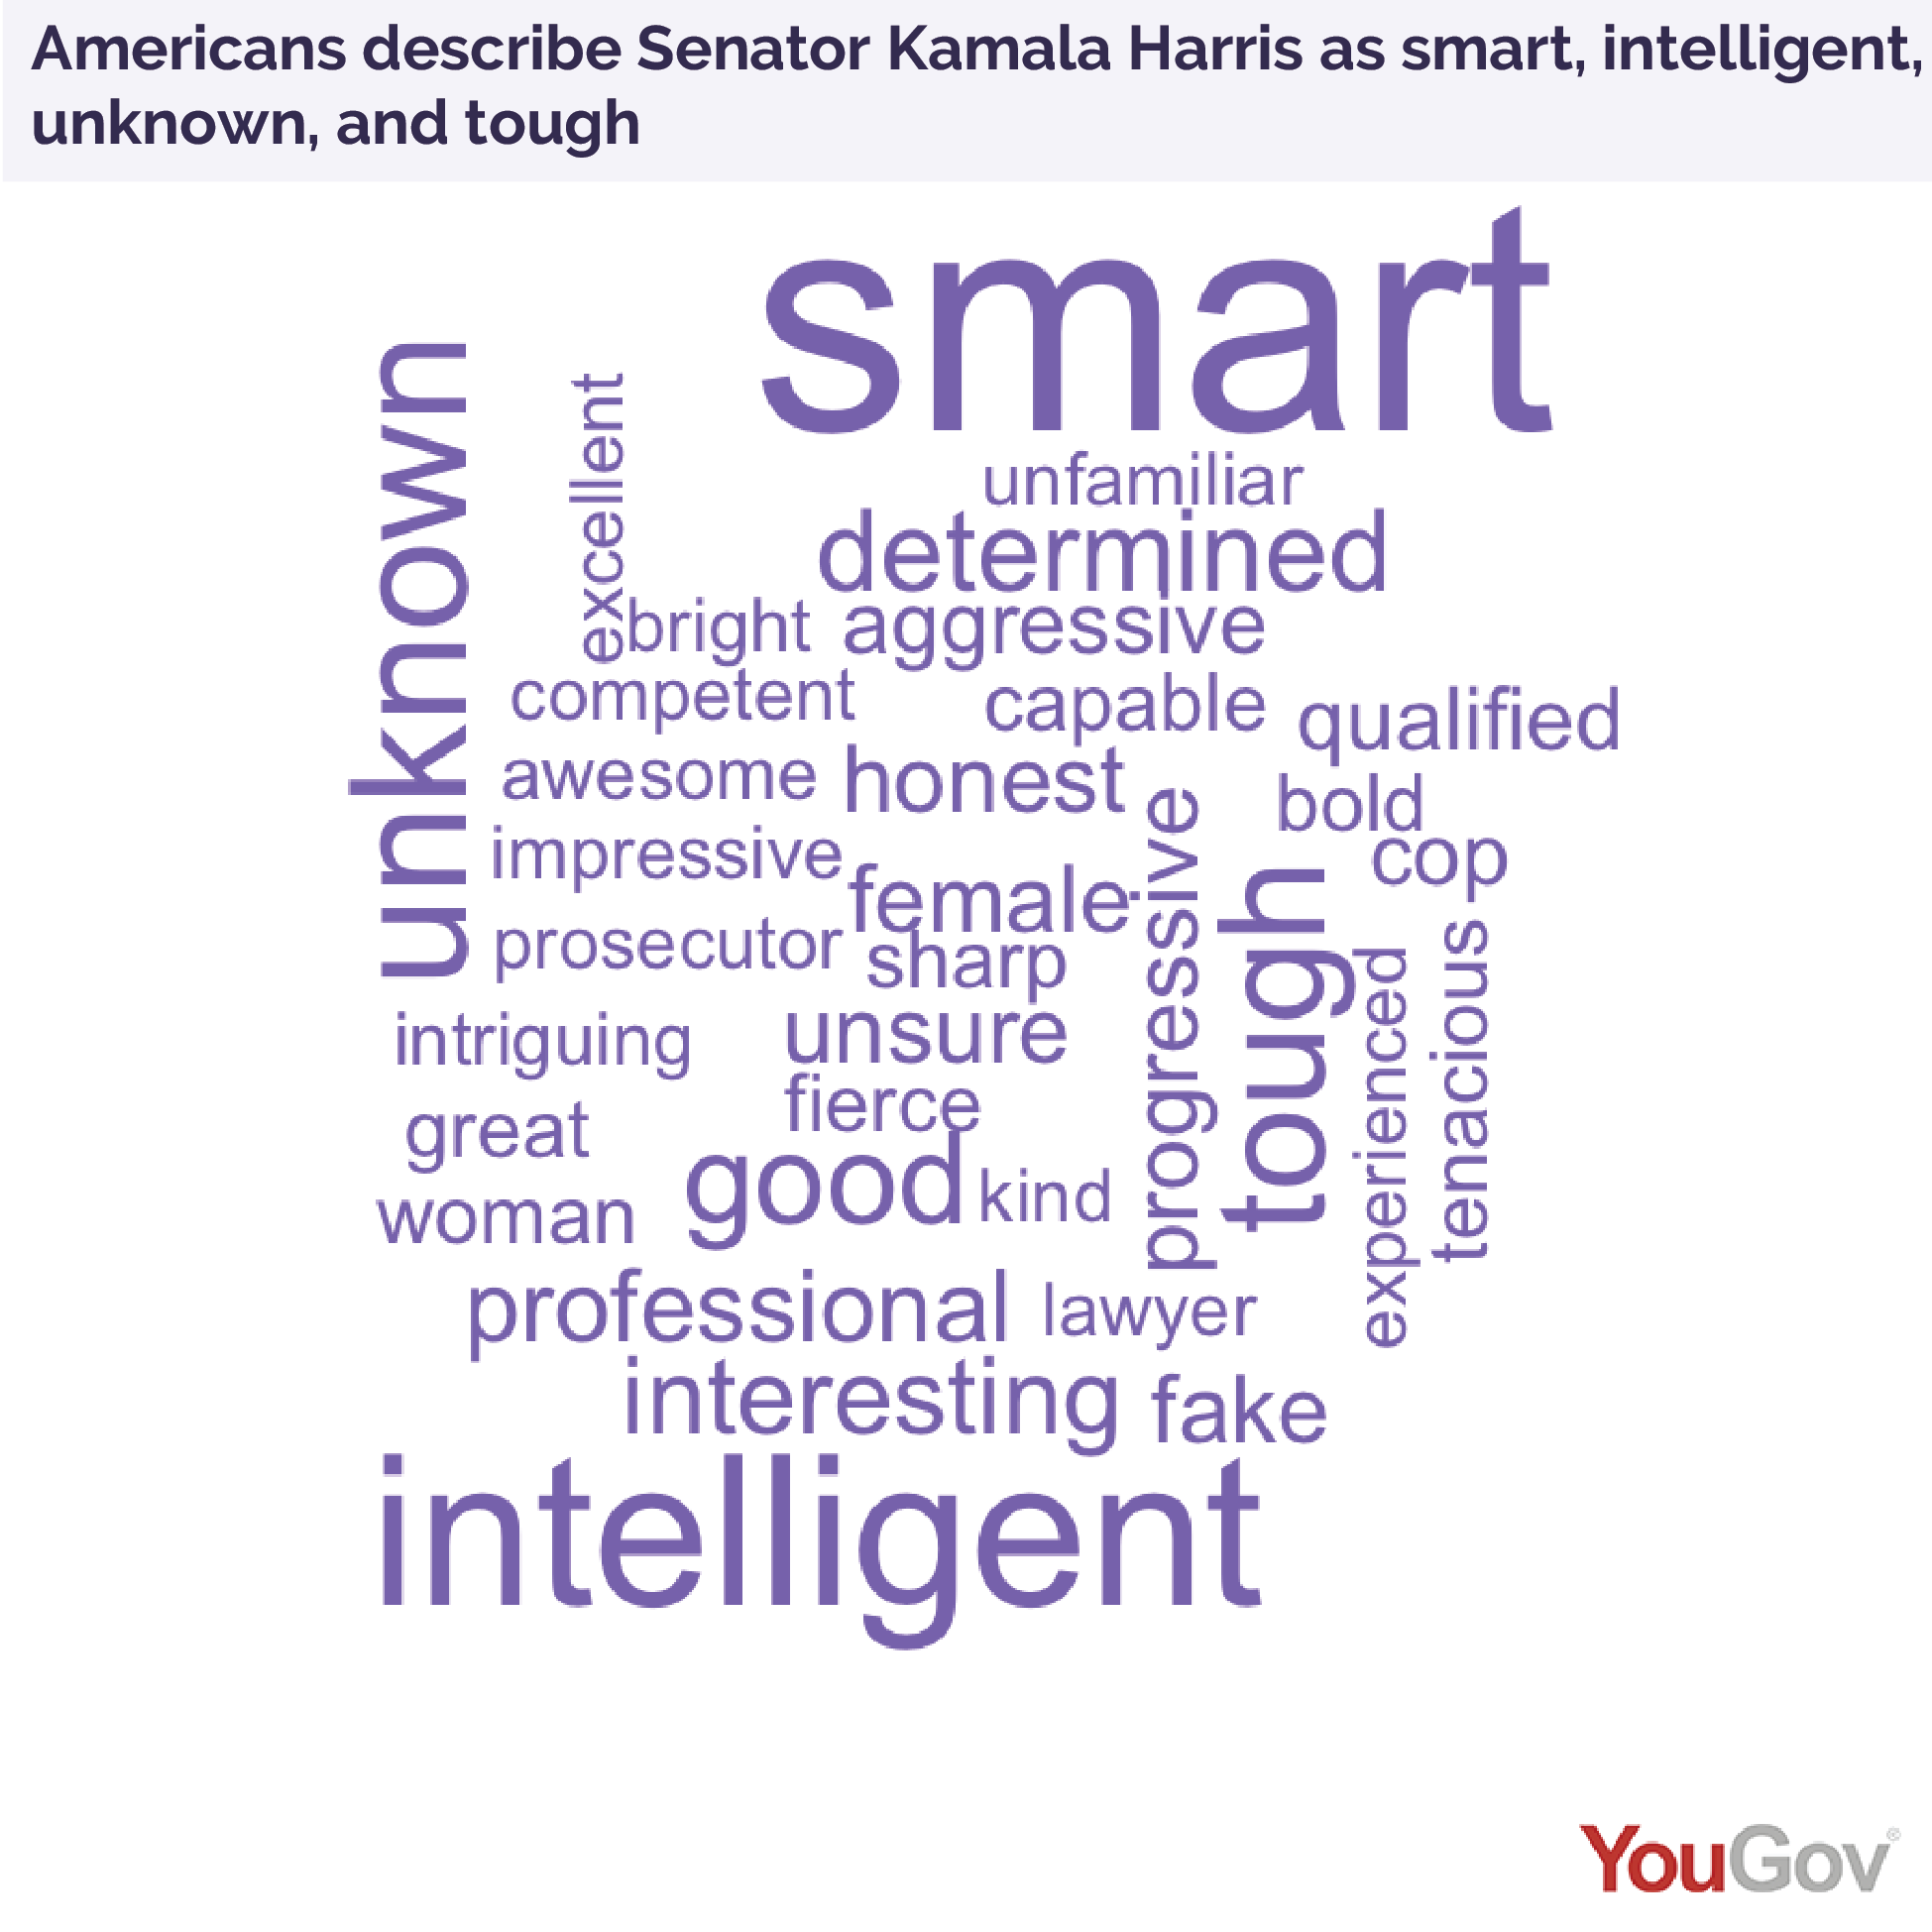 Americans describe Senator Kamala Harris as smart, intelligent, unknown, and tough